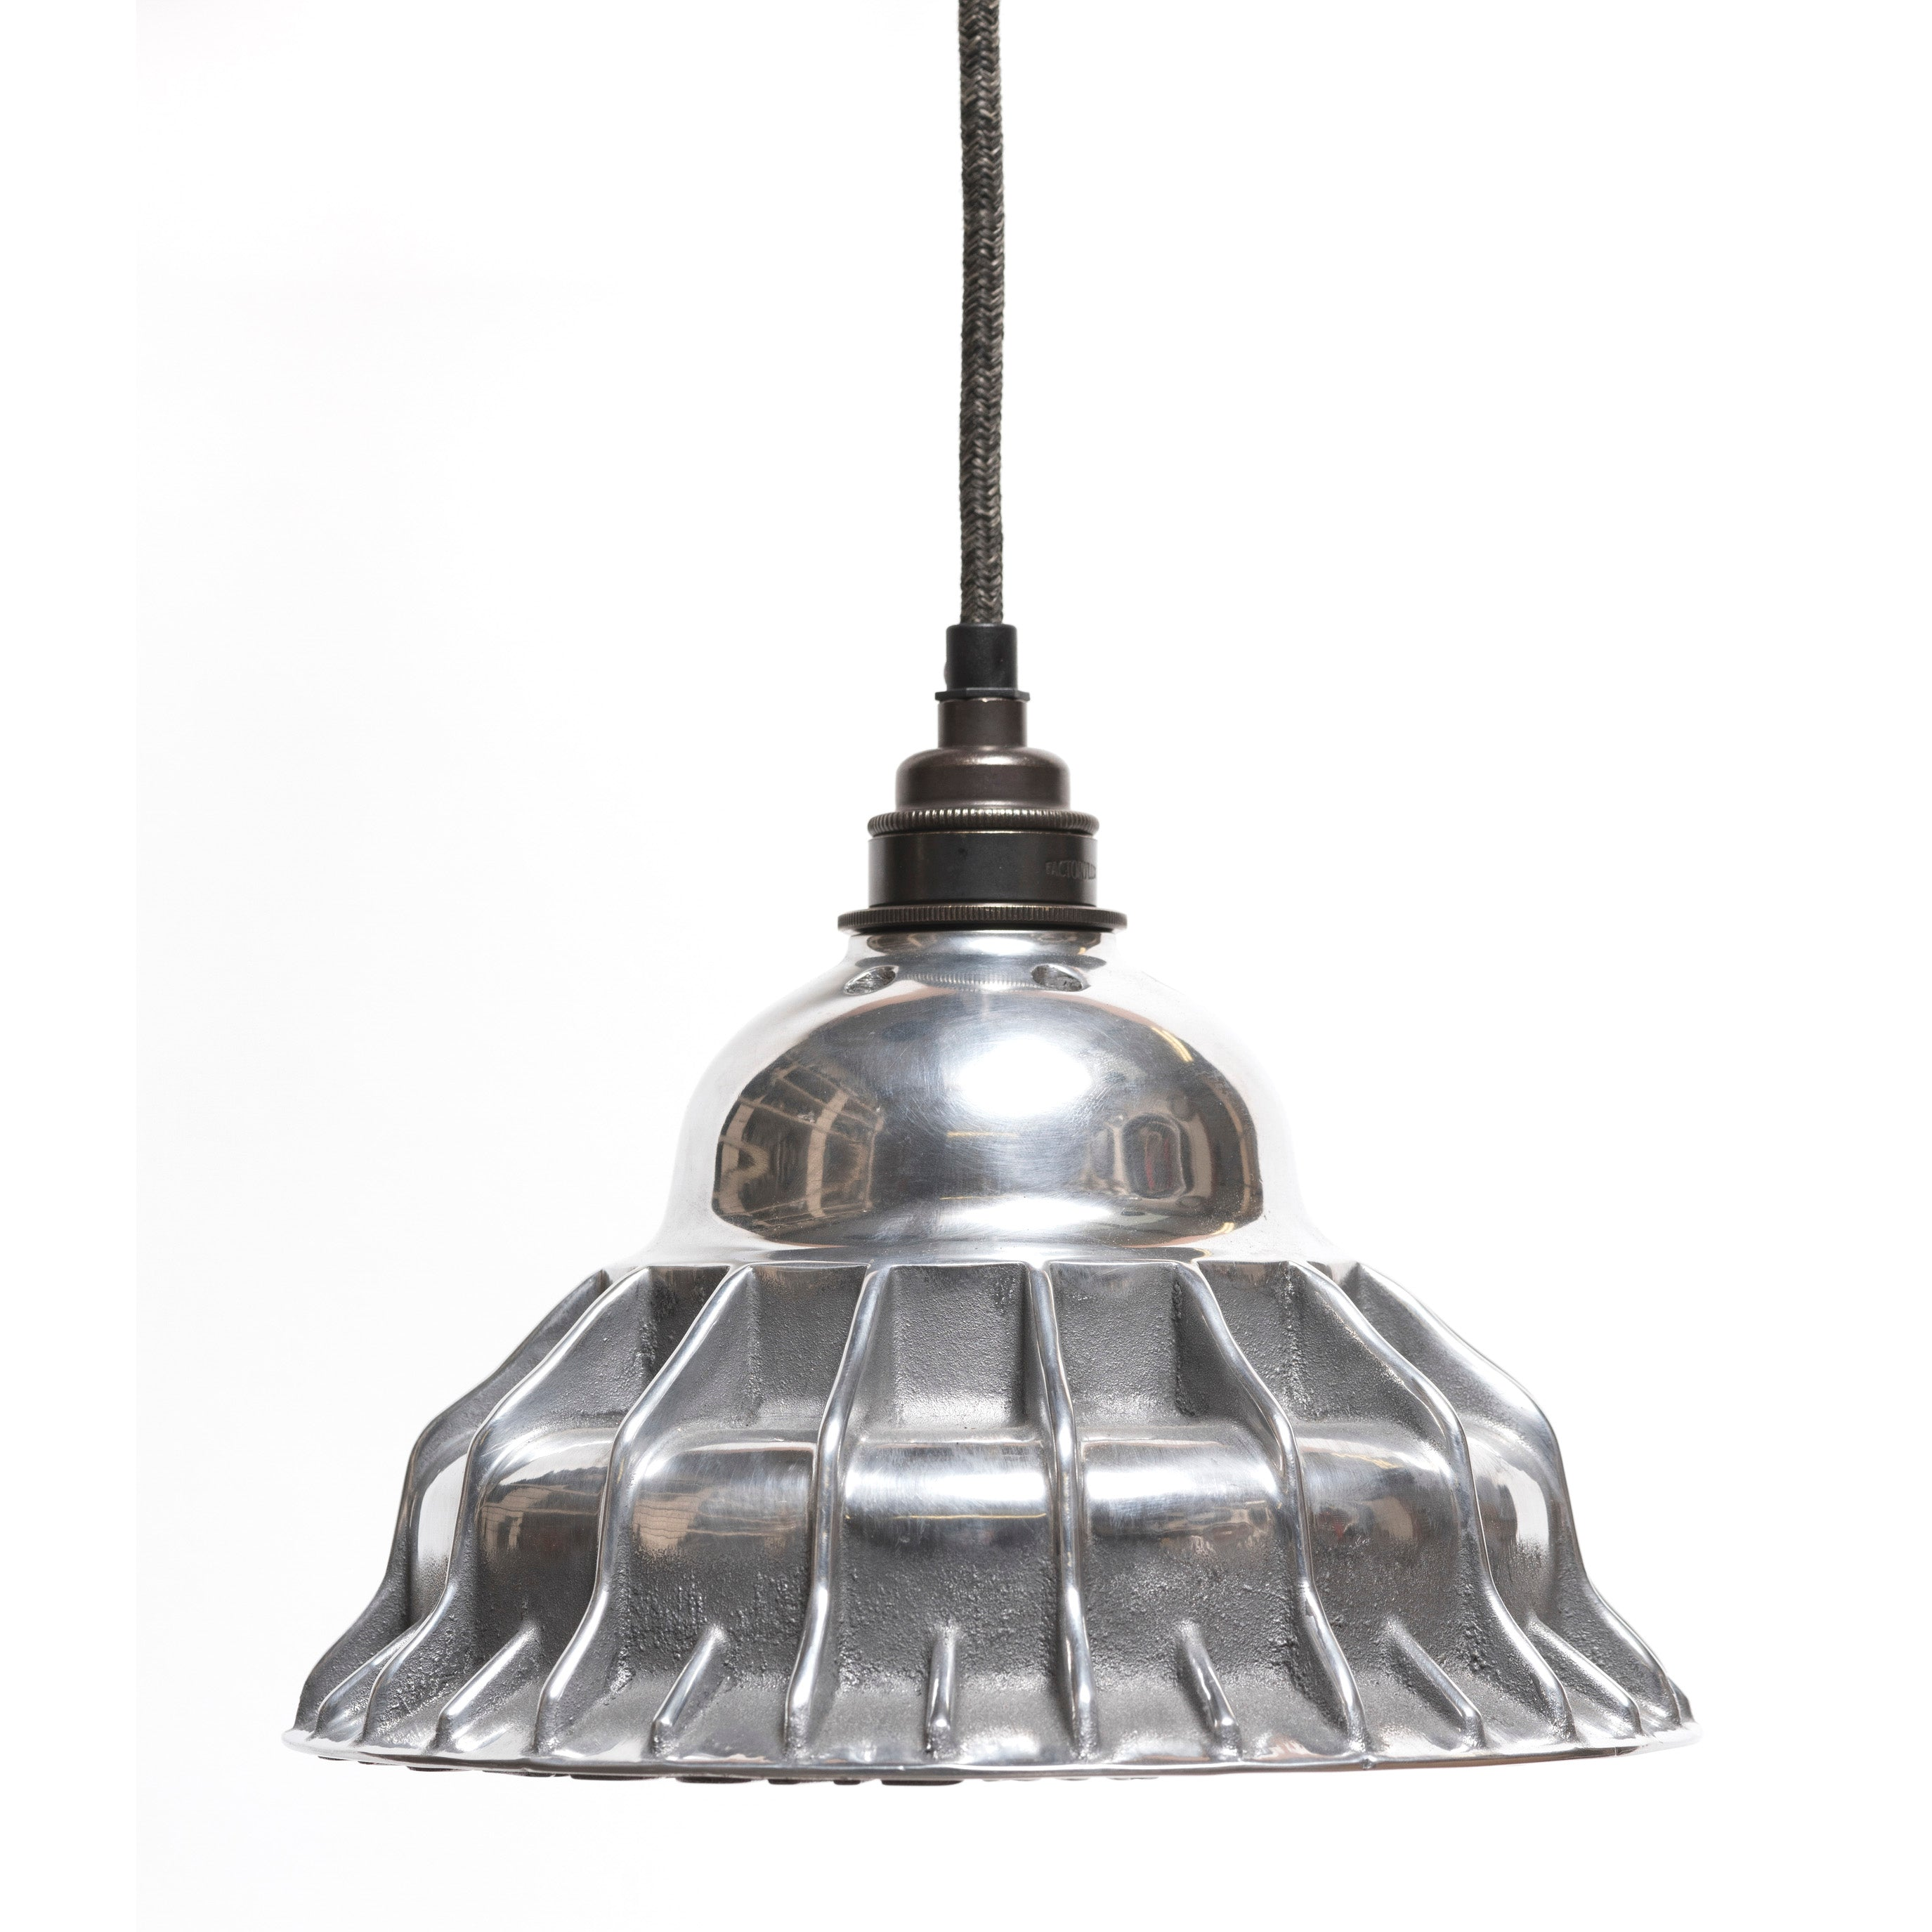 The Rag & Bone Man Pattern #5 Combination pendant lamp in polished aluminium from Warehouse Home